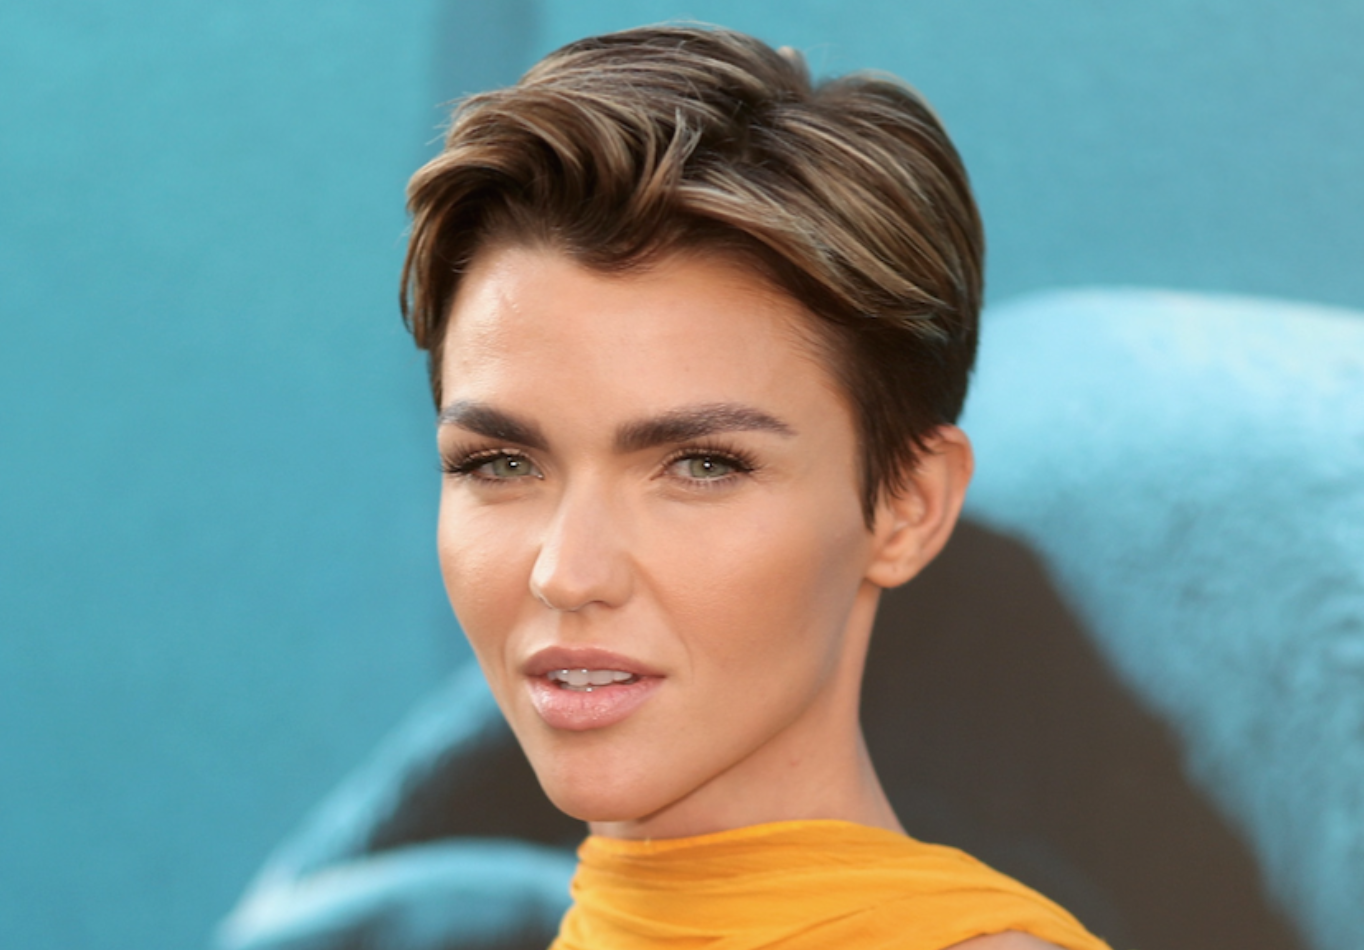 Ruby Rose Cast as Batwoman Draws Criticism